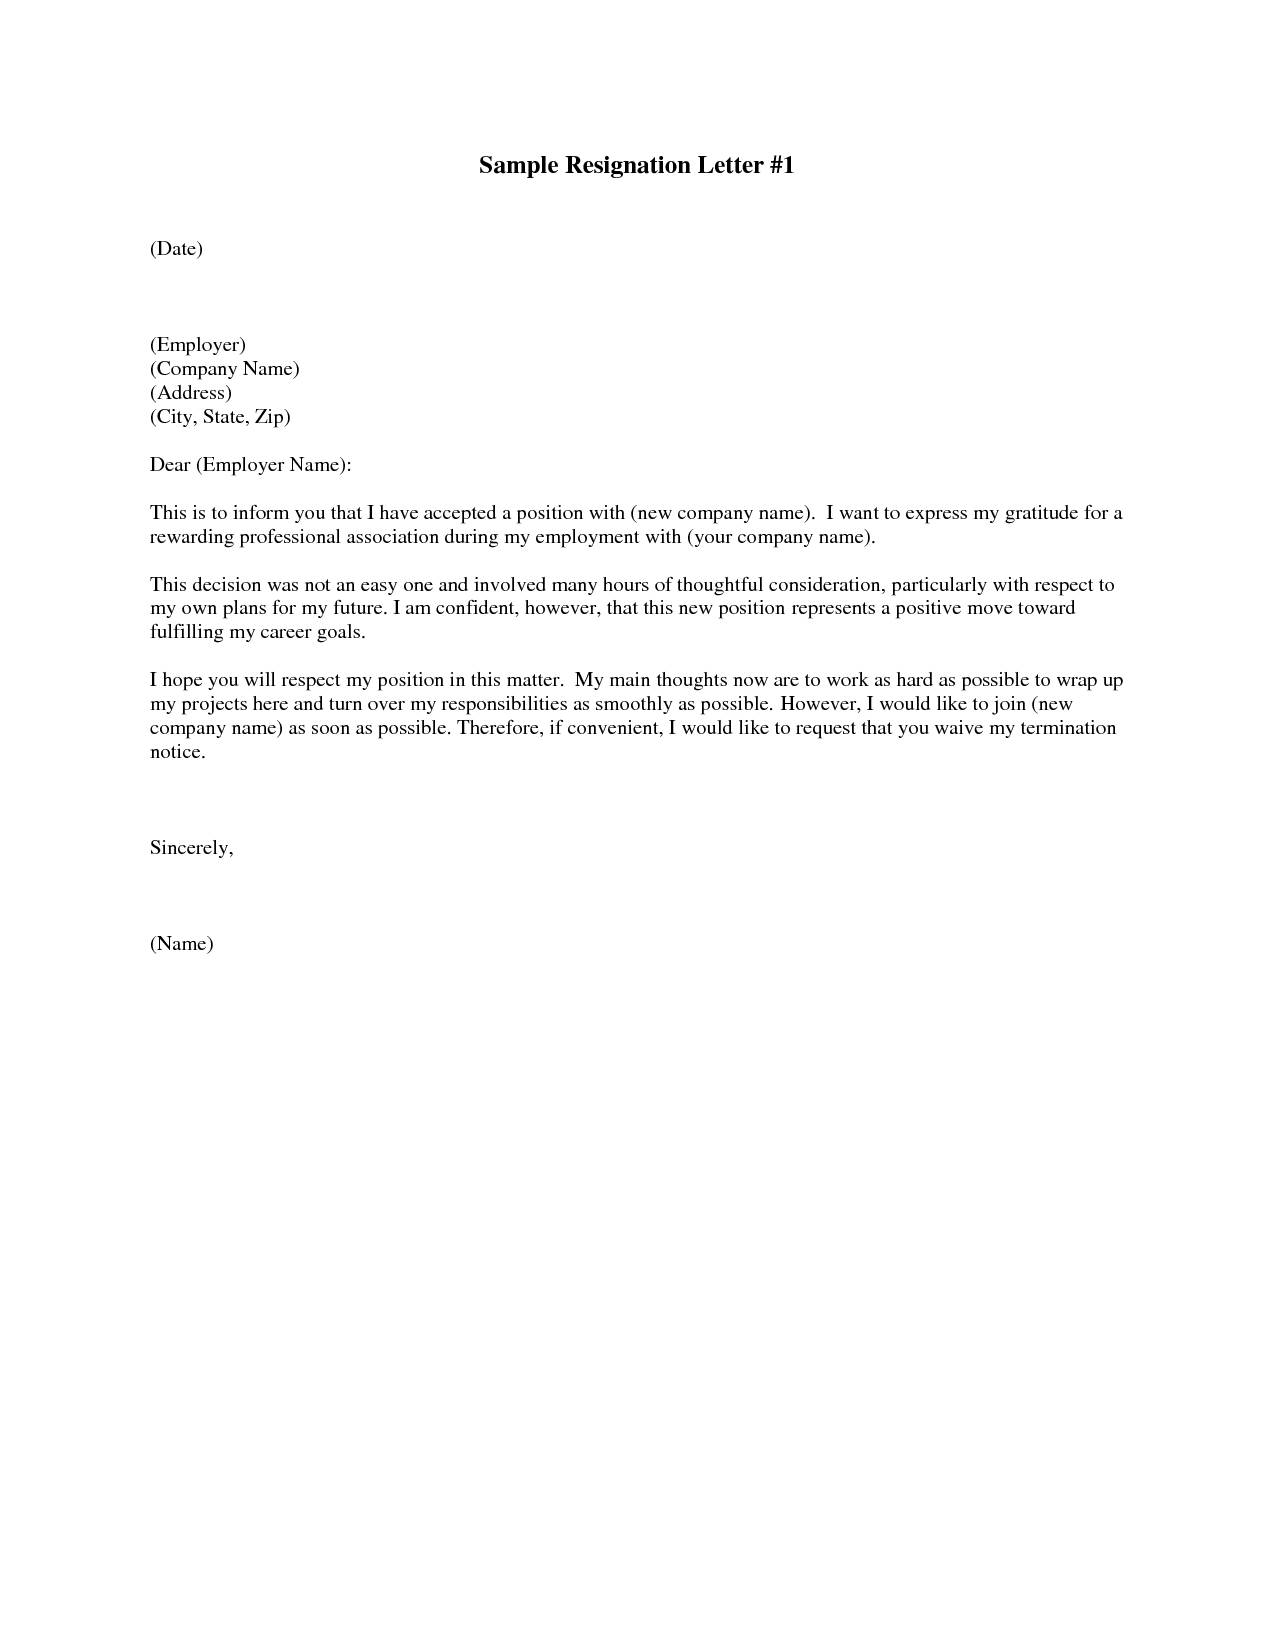 Top Resignation Letter Professional Resignation Letter Samples ...